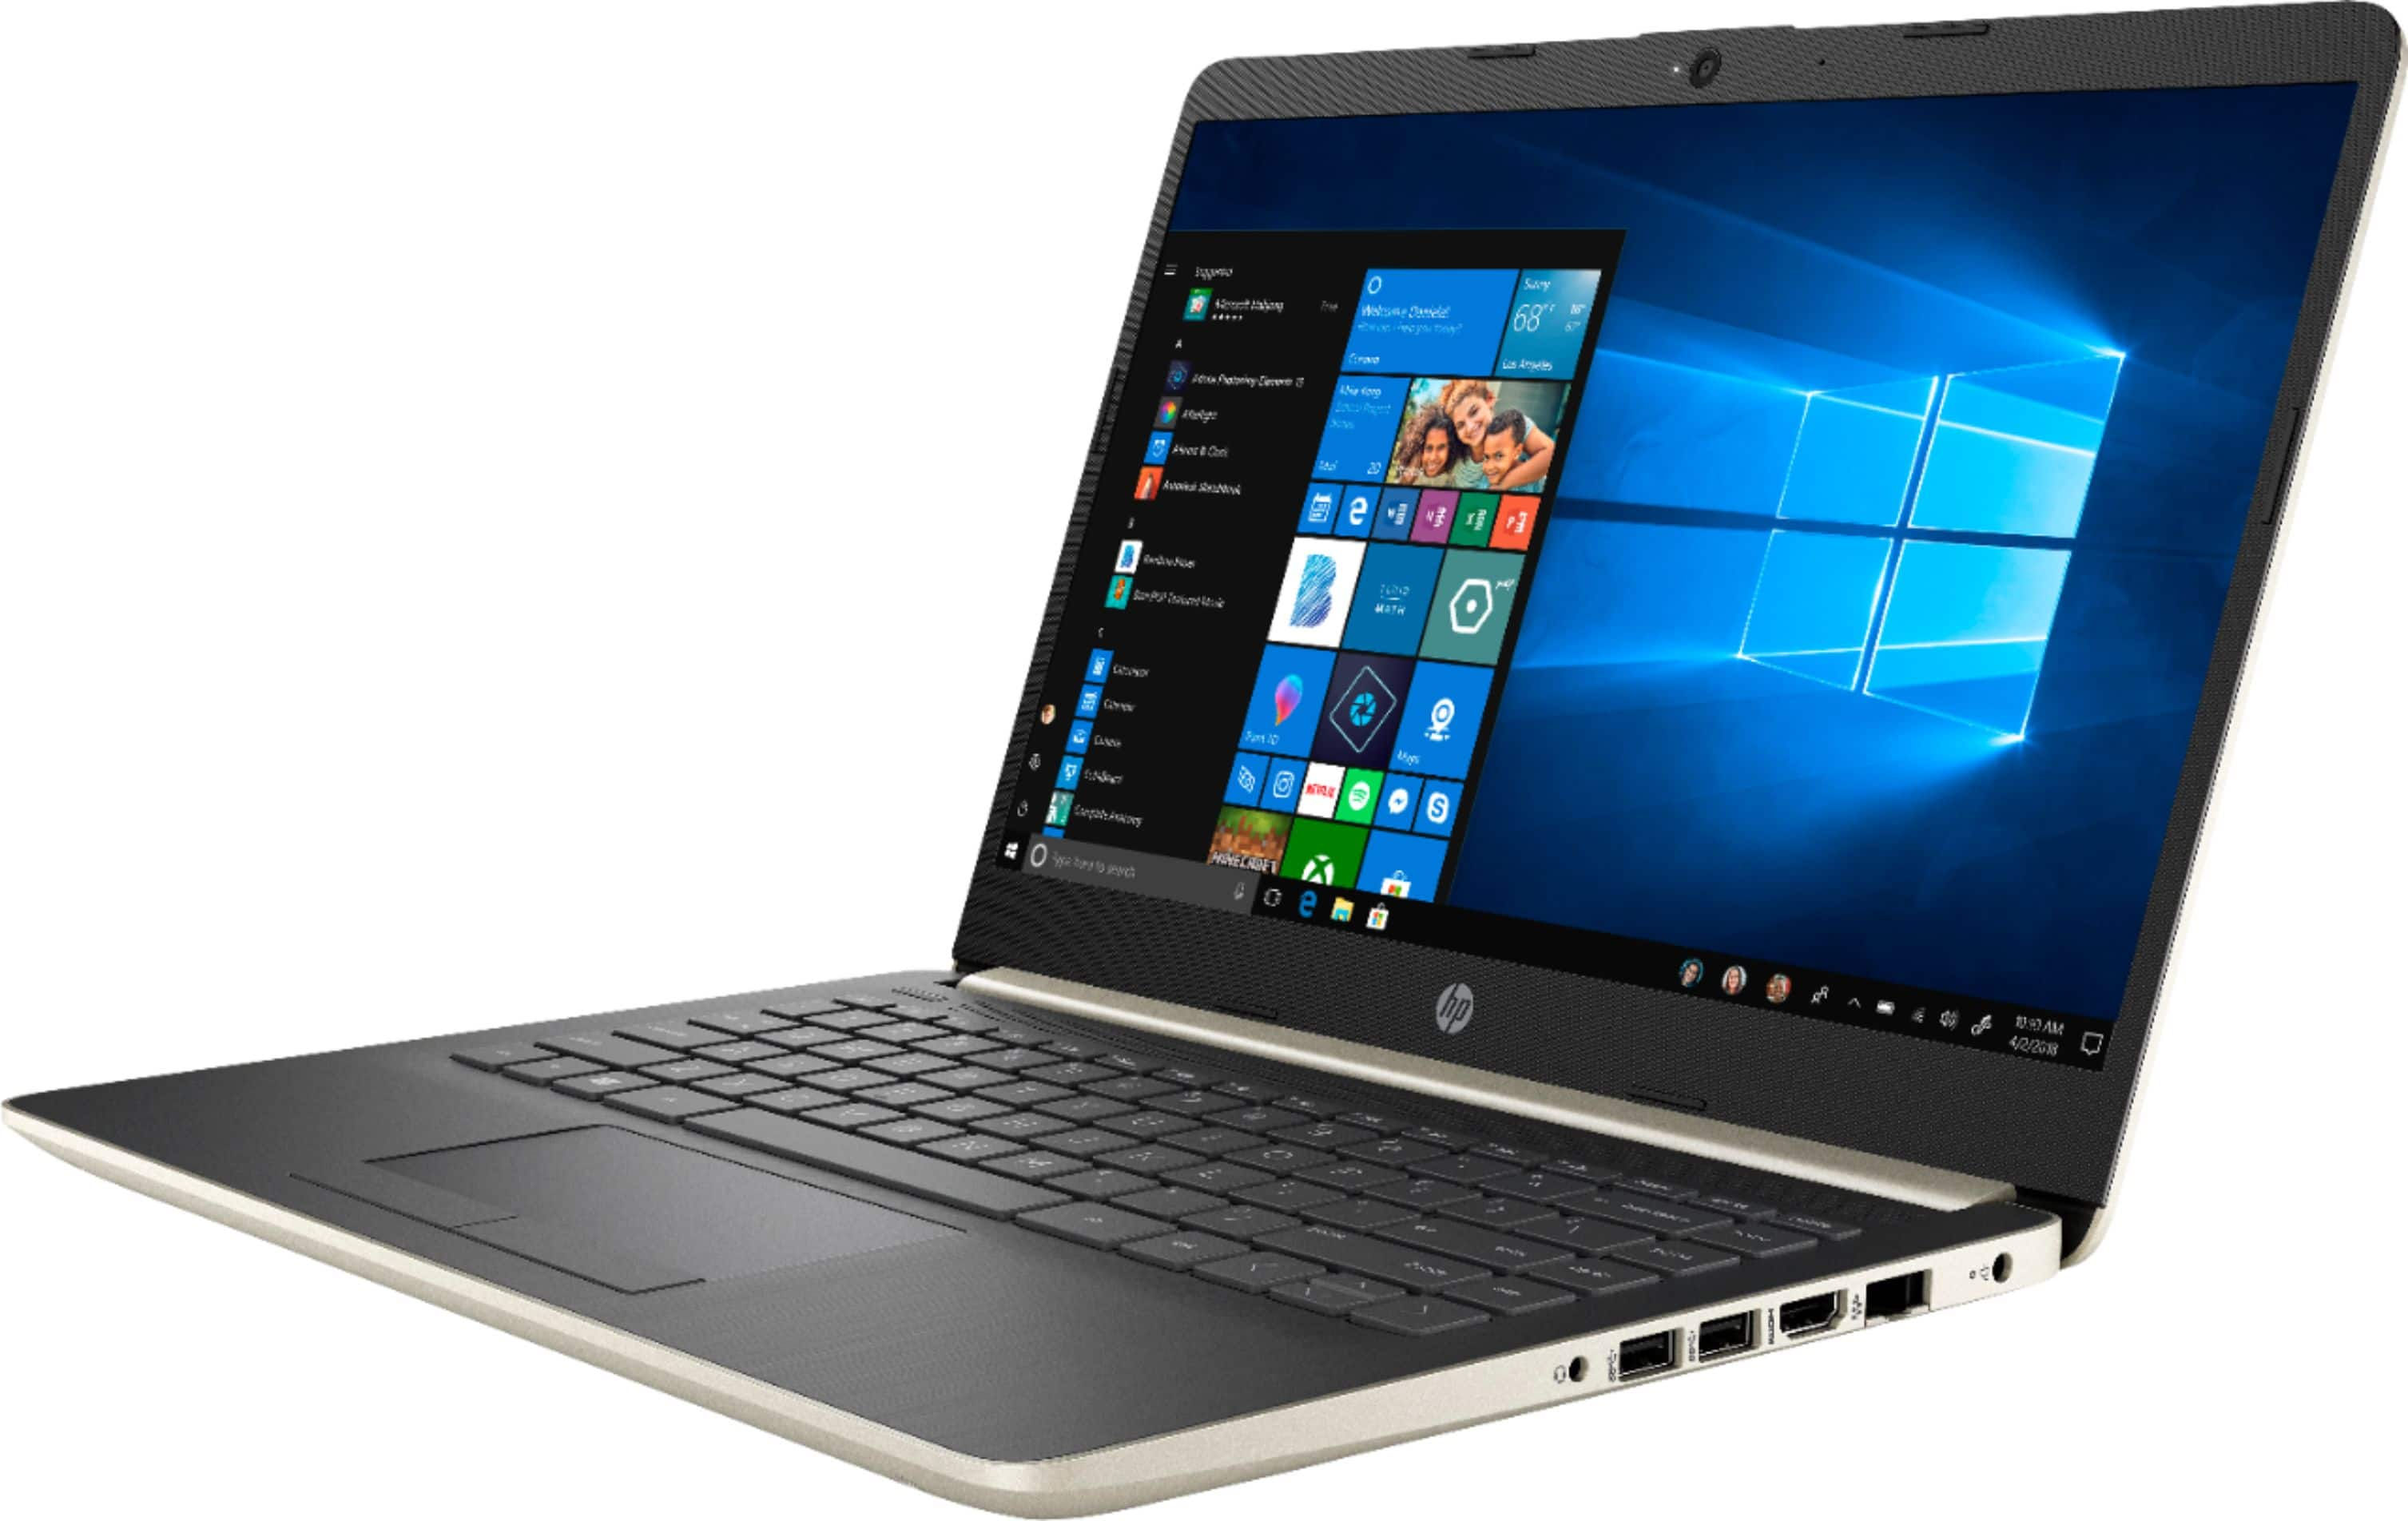 """HP 14"""" Laptop Intel Core i3 4GB Memory 128GB Solid State Drive Ash Silver Keyboard Frame 14-CF0006DX - Best Buy $280"""